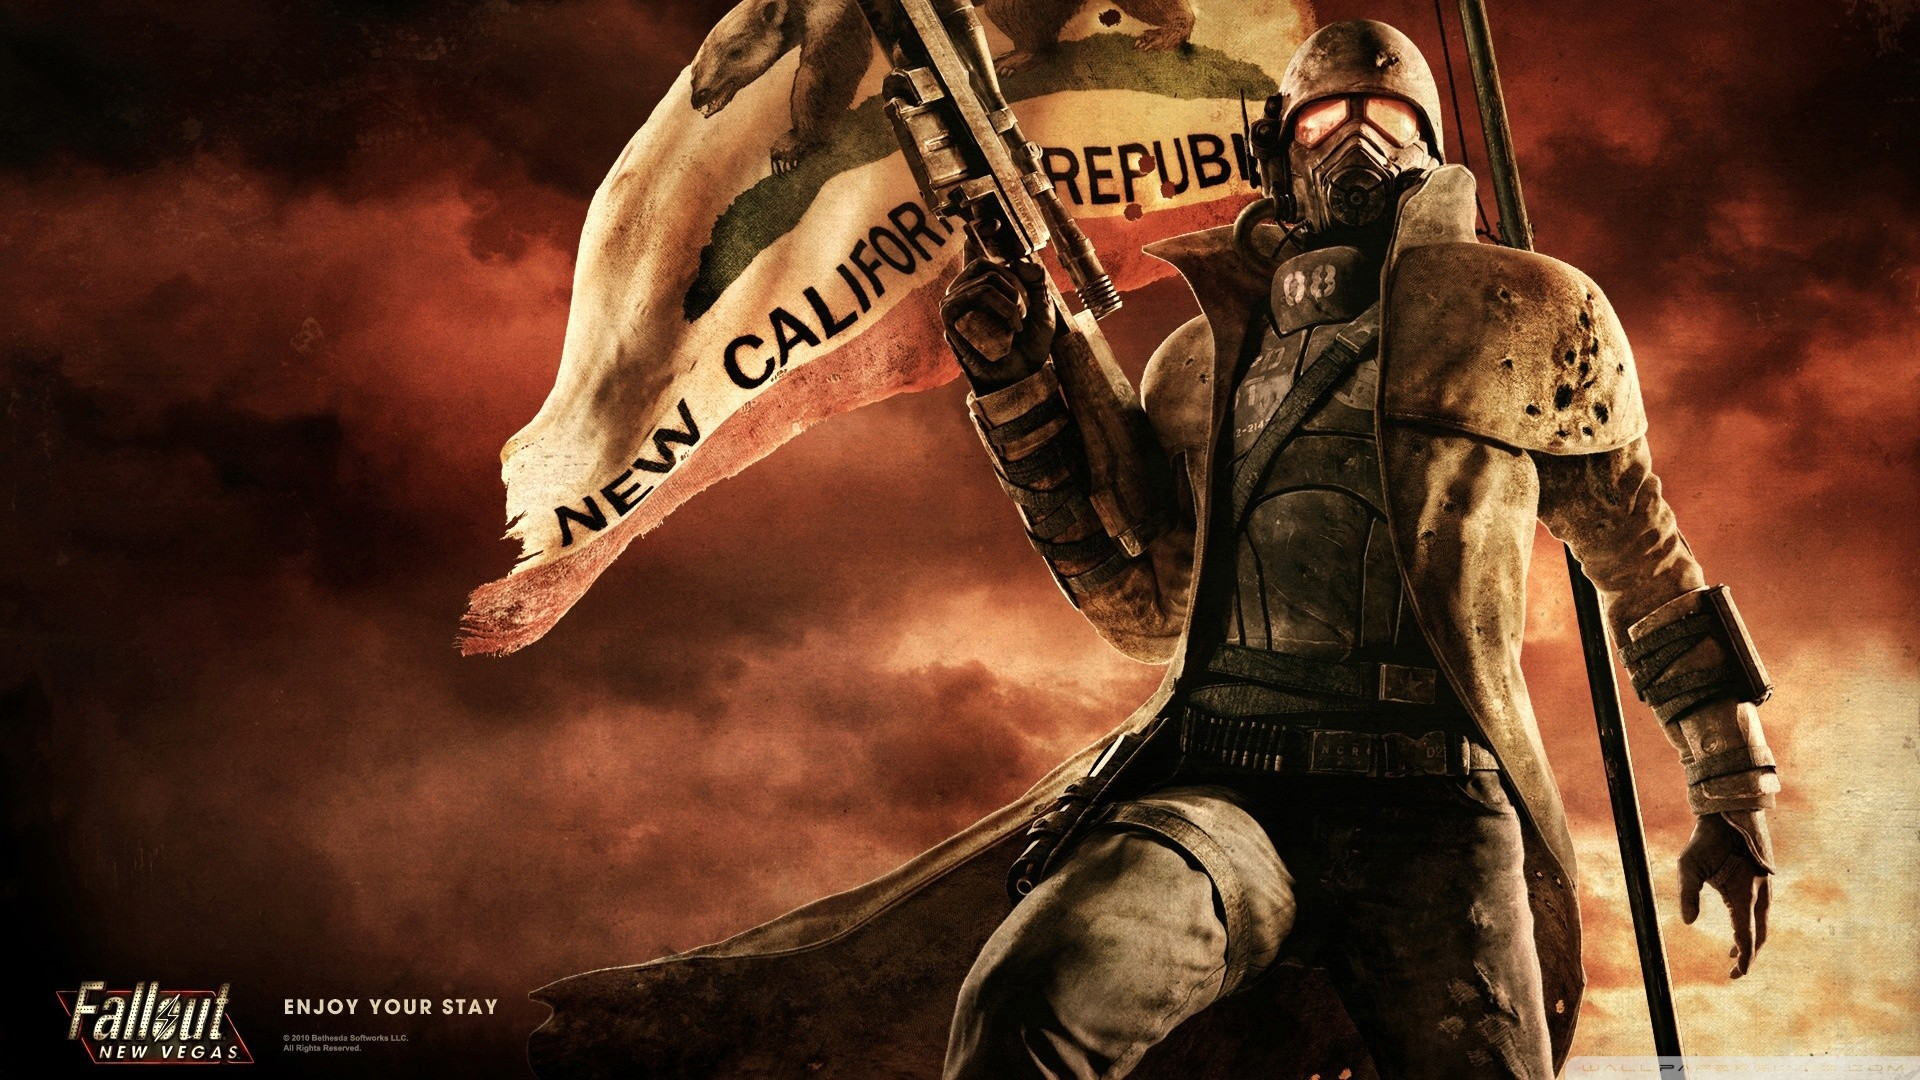 Fallout New Vegas HD Wallpapers Backgrounds Wallpaper | HD Wallpapers |  Pinterest | Fallout, Wallpaper and Wallpaper backgrounds